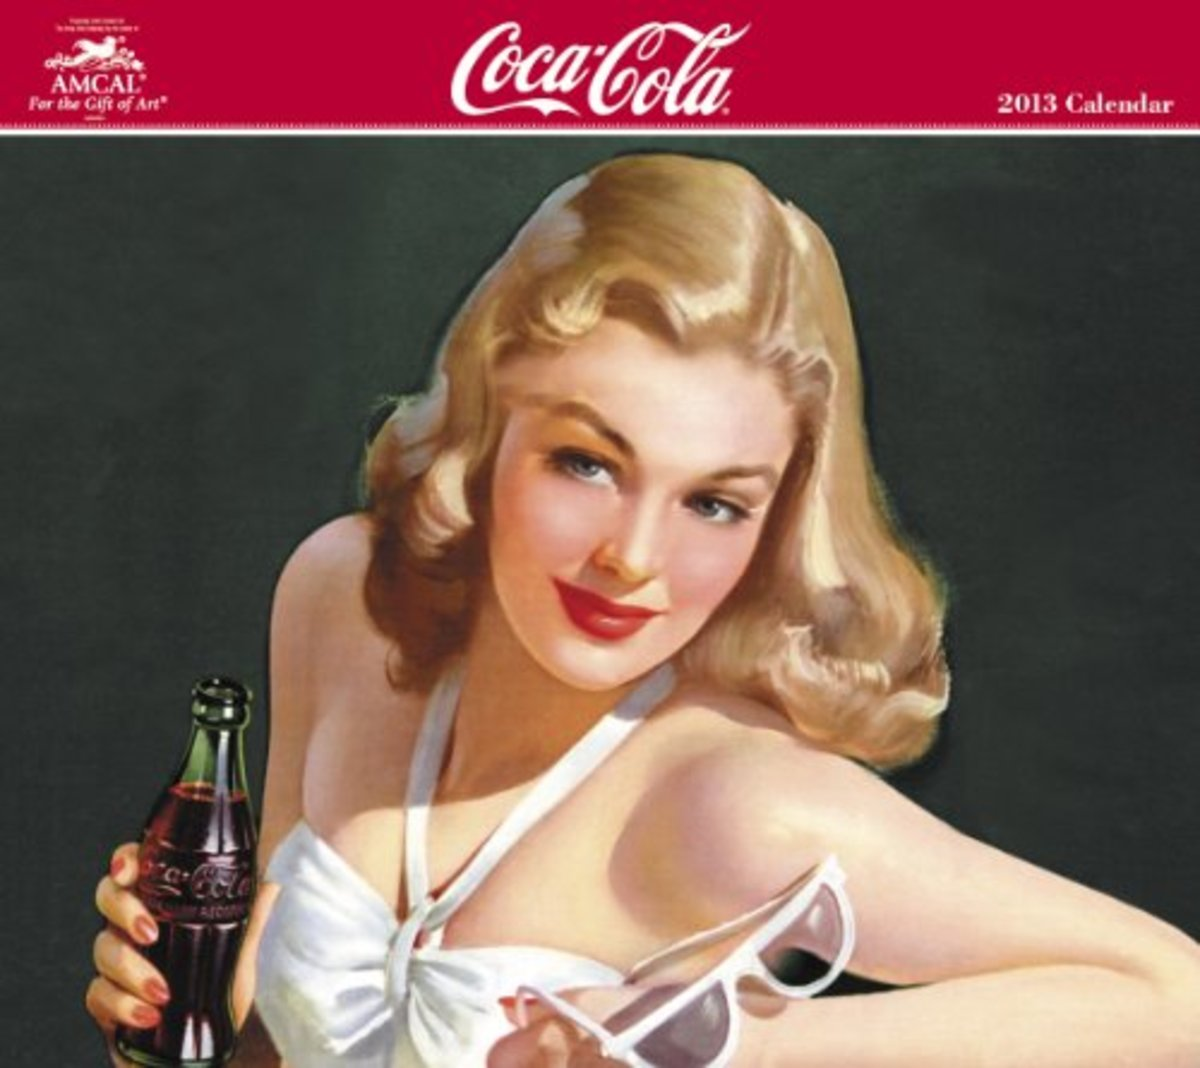 2013 Coca Cola Calendar featuring a young blond girl in a white swim suit holding white sunglasses and a Coca Cola